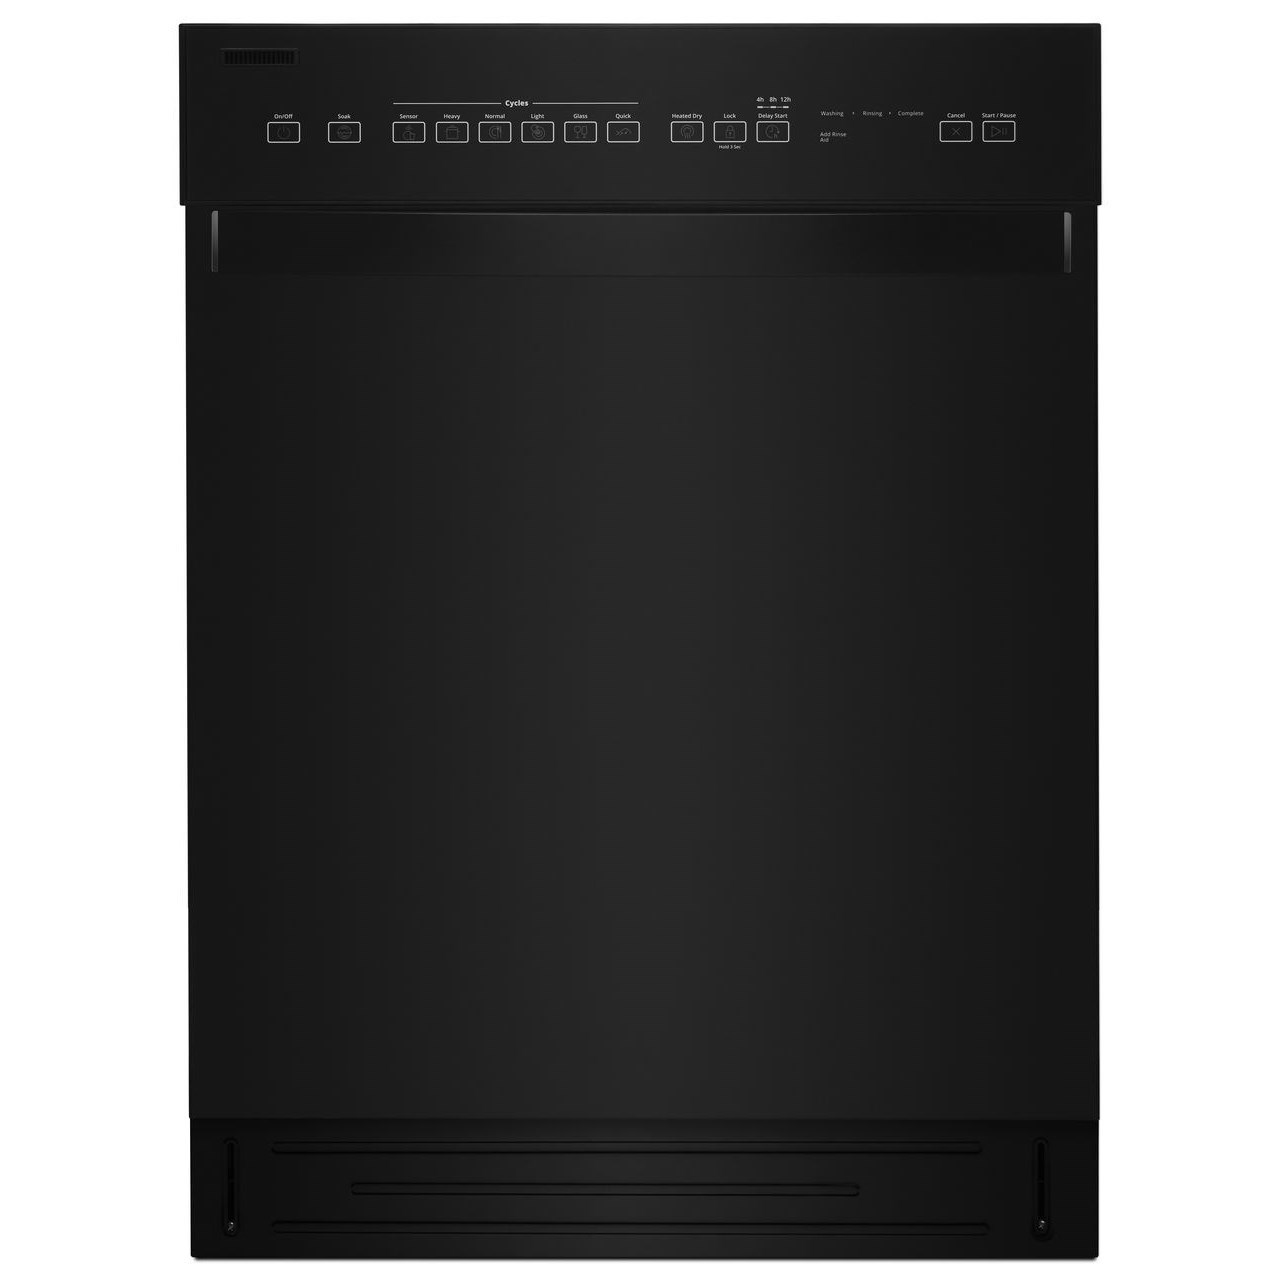 Dishwashers - Whirlpool Quiet Dishwasher with Stainless Steel Tub by Whirlpool at Furniture and ApplianceMart